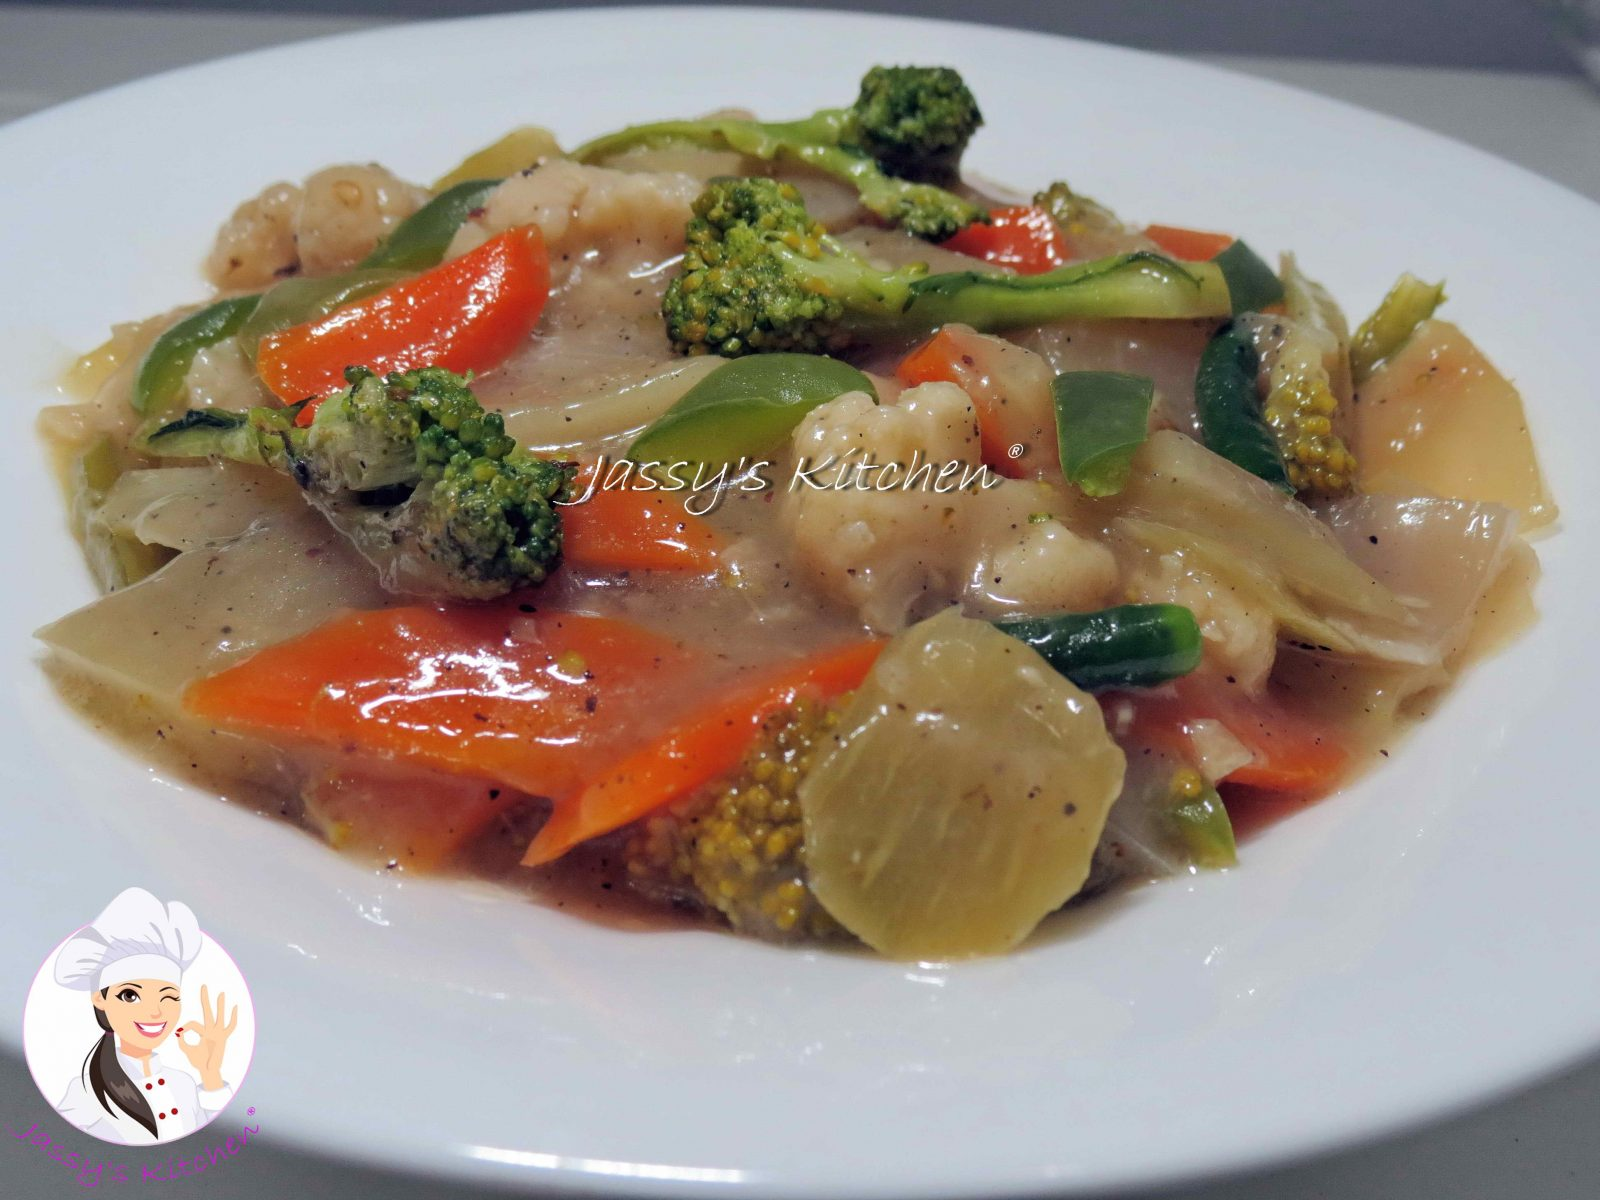 Chinese Vegetable With Chicken from Jassy's Kitchen